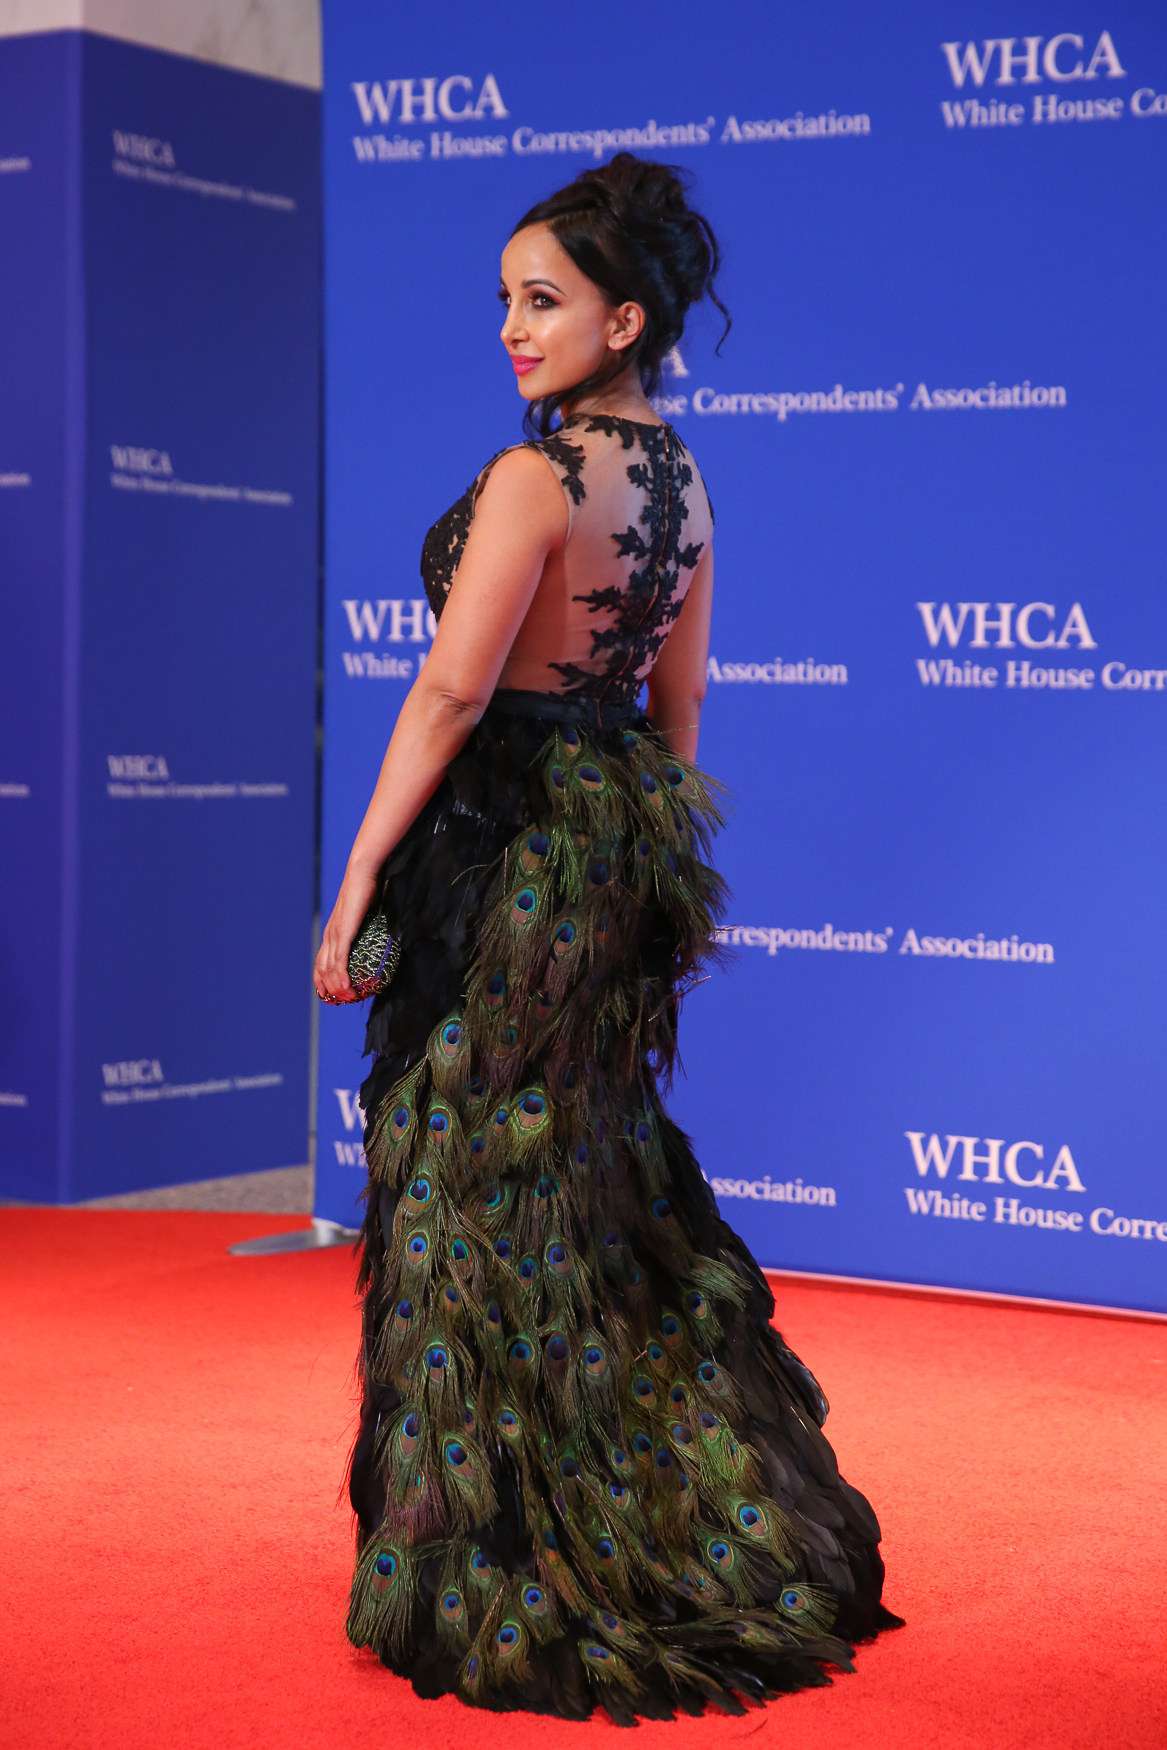 Now onto the dresses! With the general changes in the WHCD since President Trump took office, the looks have generally been more lowkey, but this dress was something of an exception.{ }(Amanda Andrade-Rhoades/DC Refined)